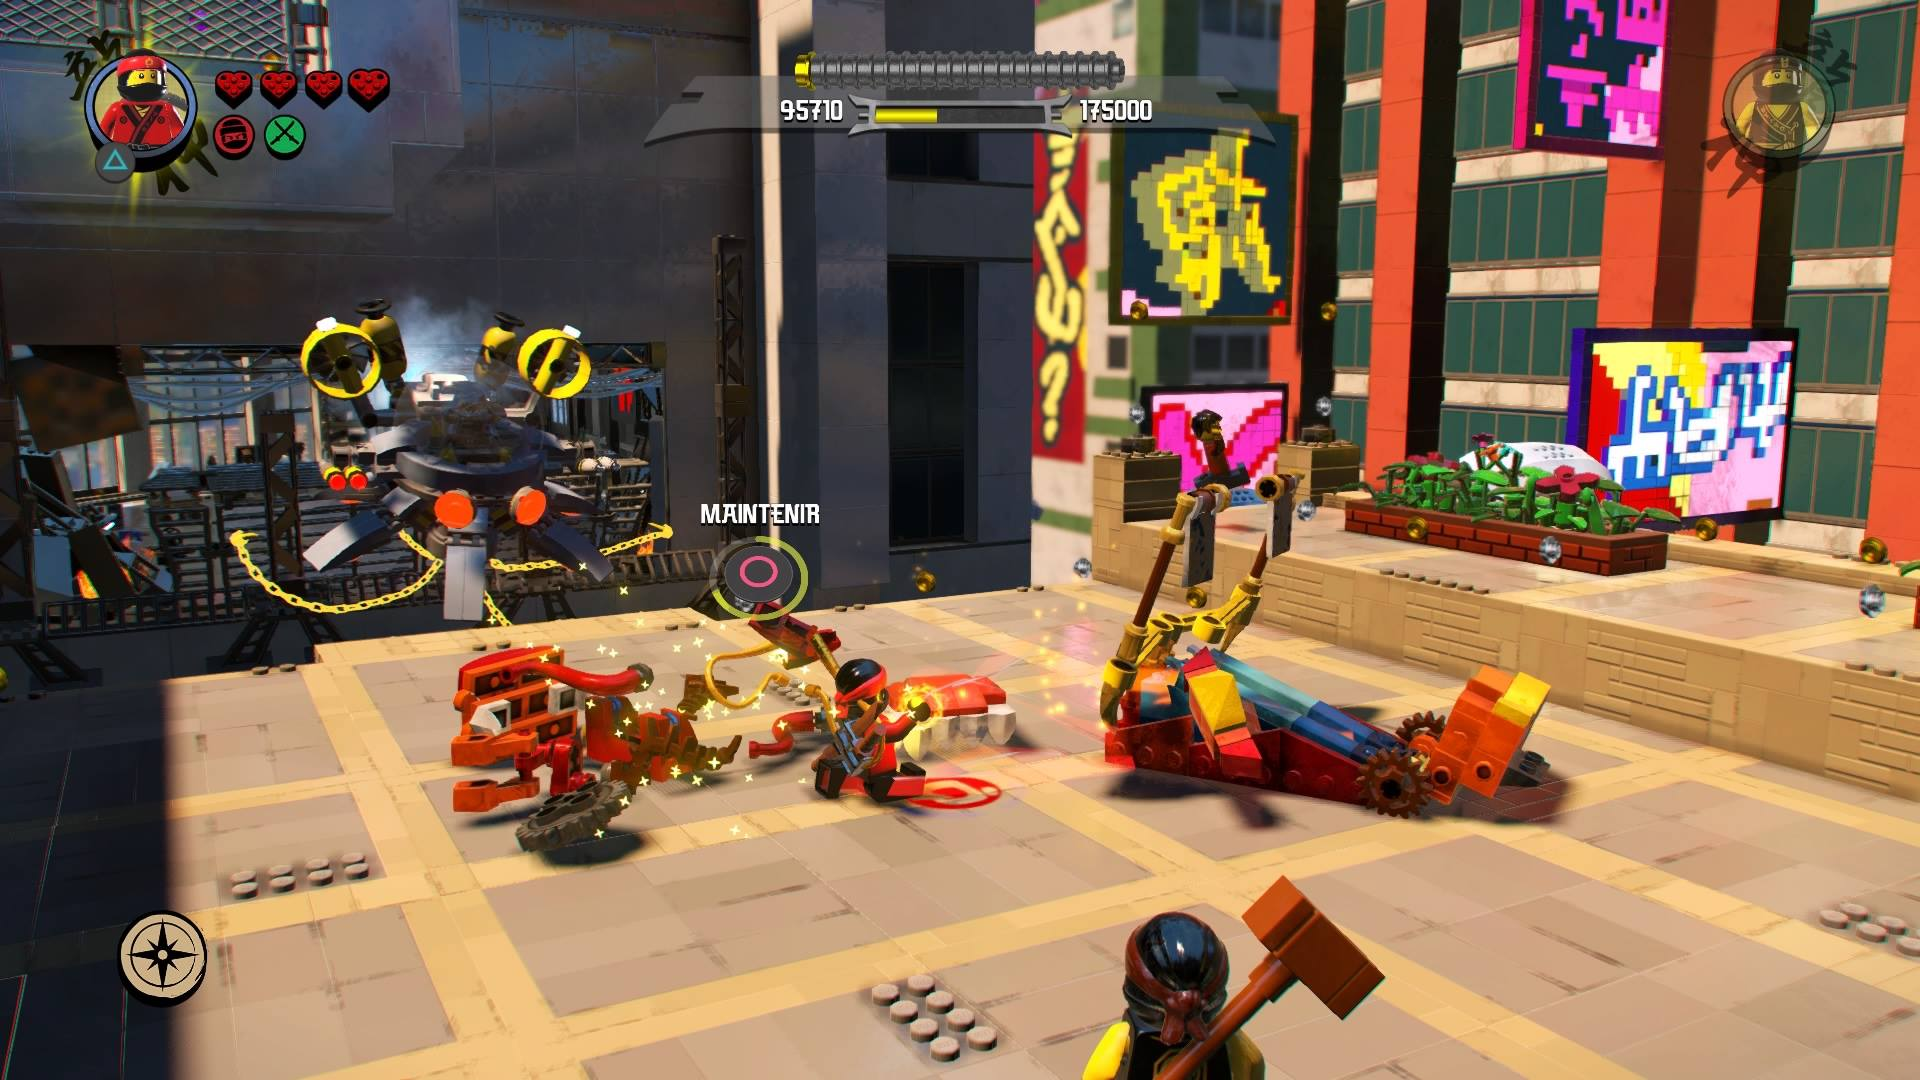 Test du jeu lego ninjago le film blogue best buy - Jeu lego ninjago gratuit ...